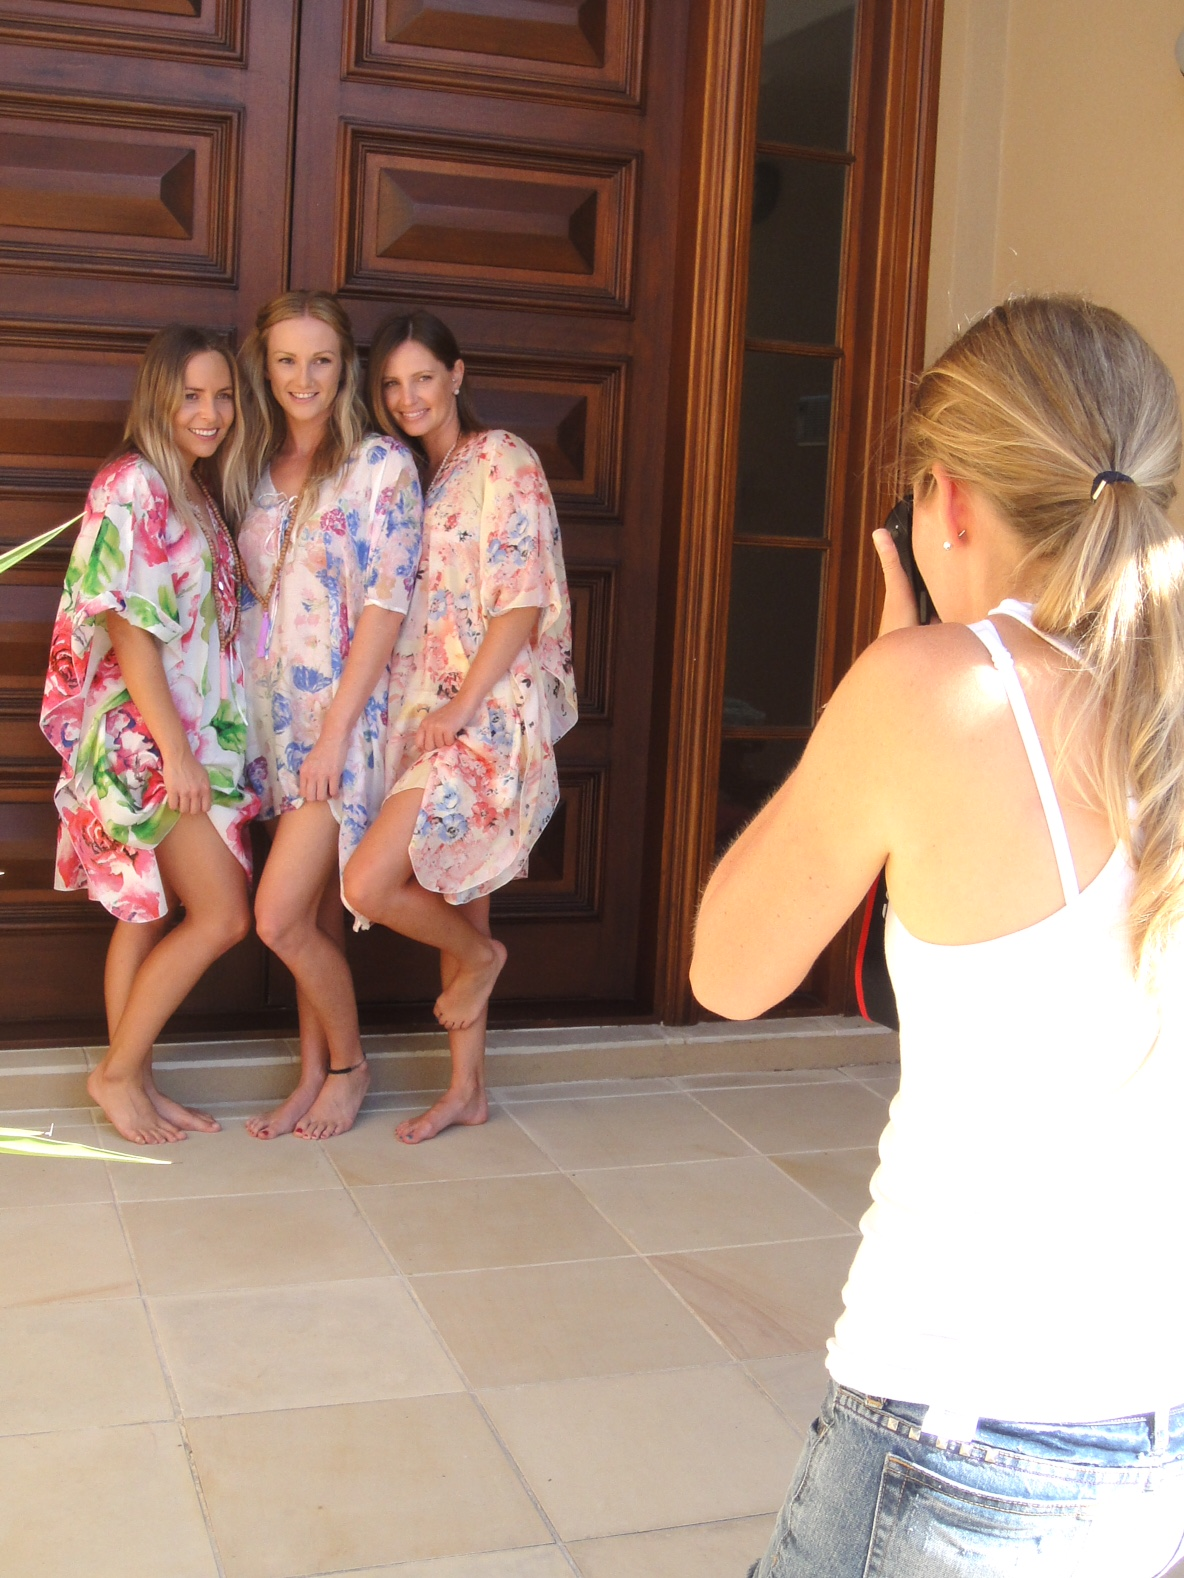 Kaftan Photo Shoot